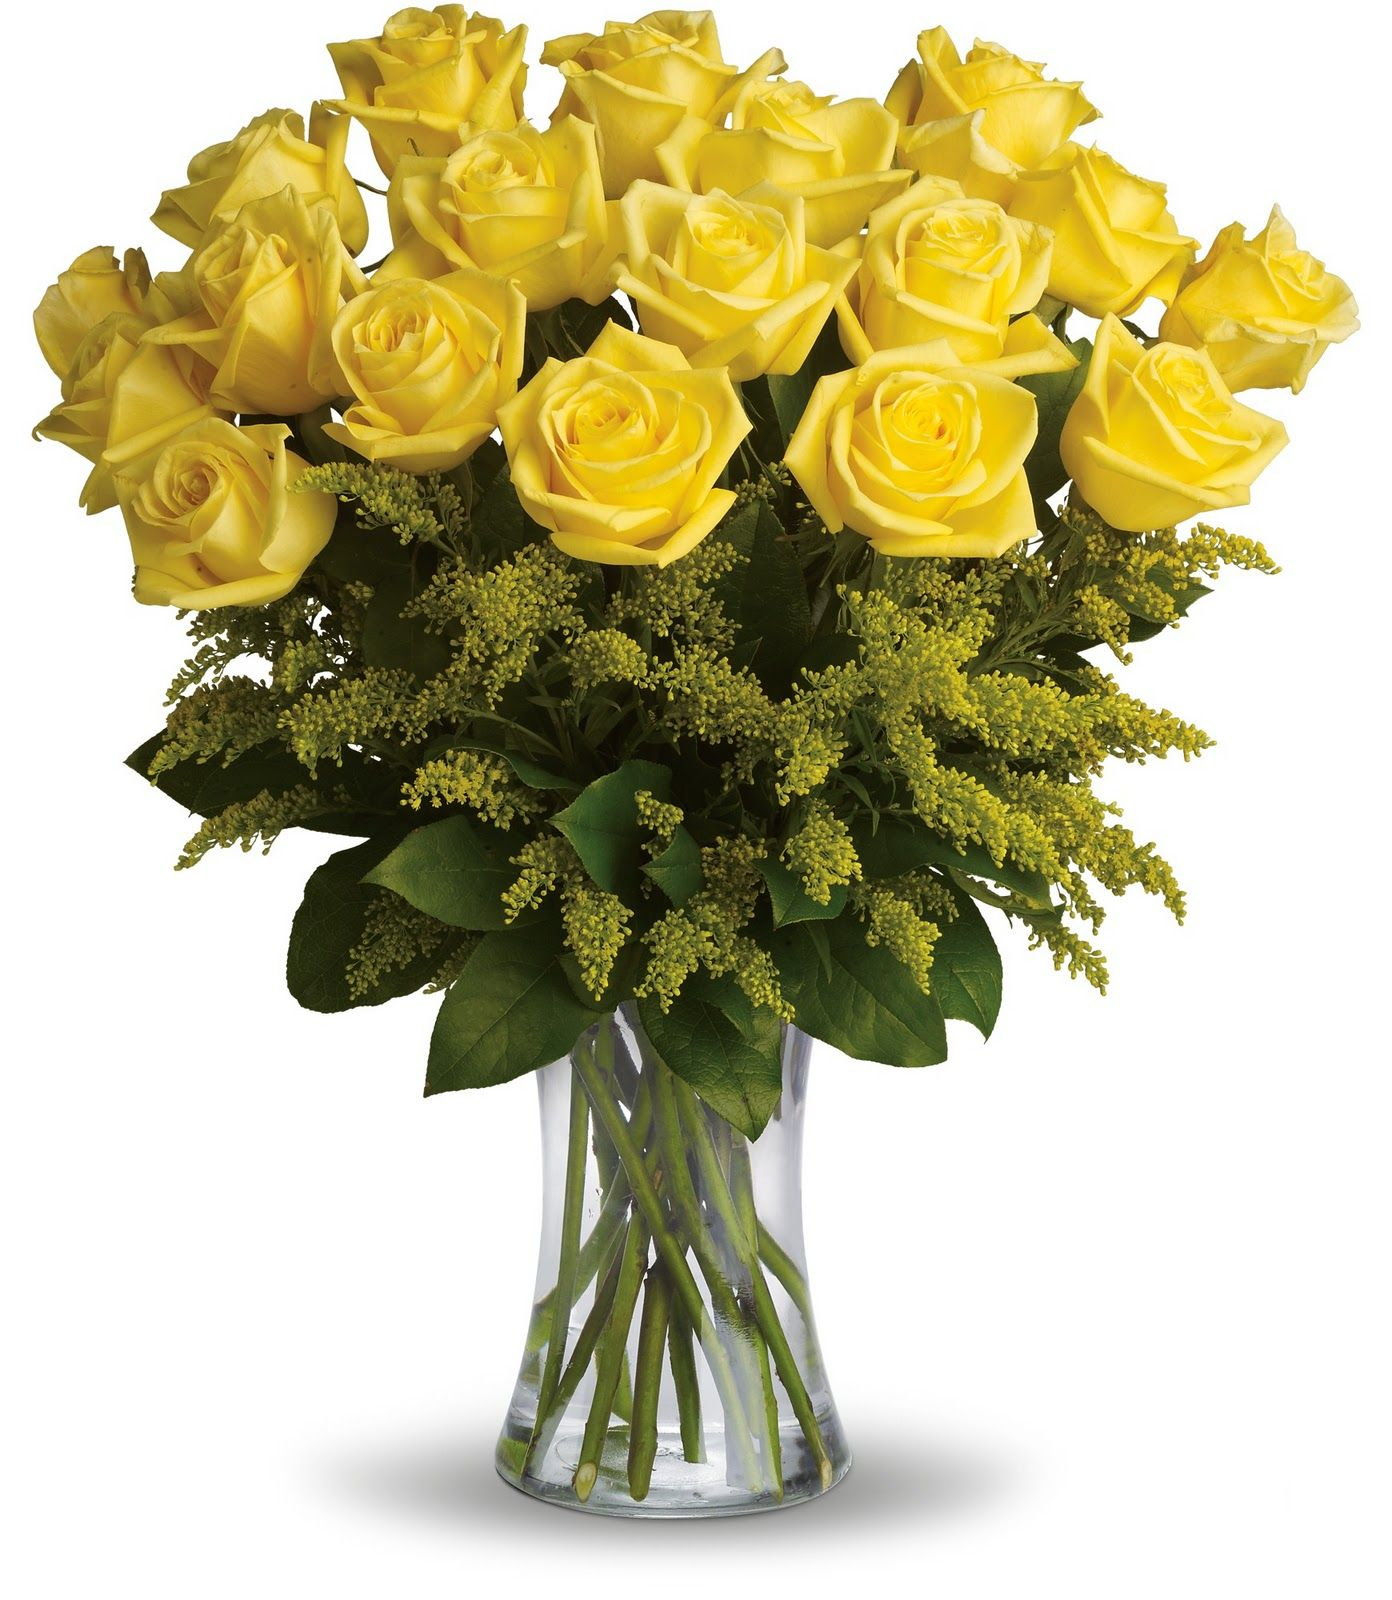 Friendship day yellow rose friendship day 2014 pinterest order rosy glow bouquet from villeres florist your local metairie florist send rosy glow bouquet for fresh and fast flower delivery throughout metairie dhlflorist Gallery